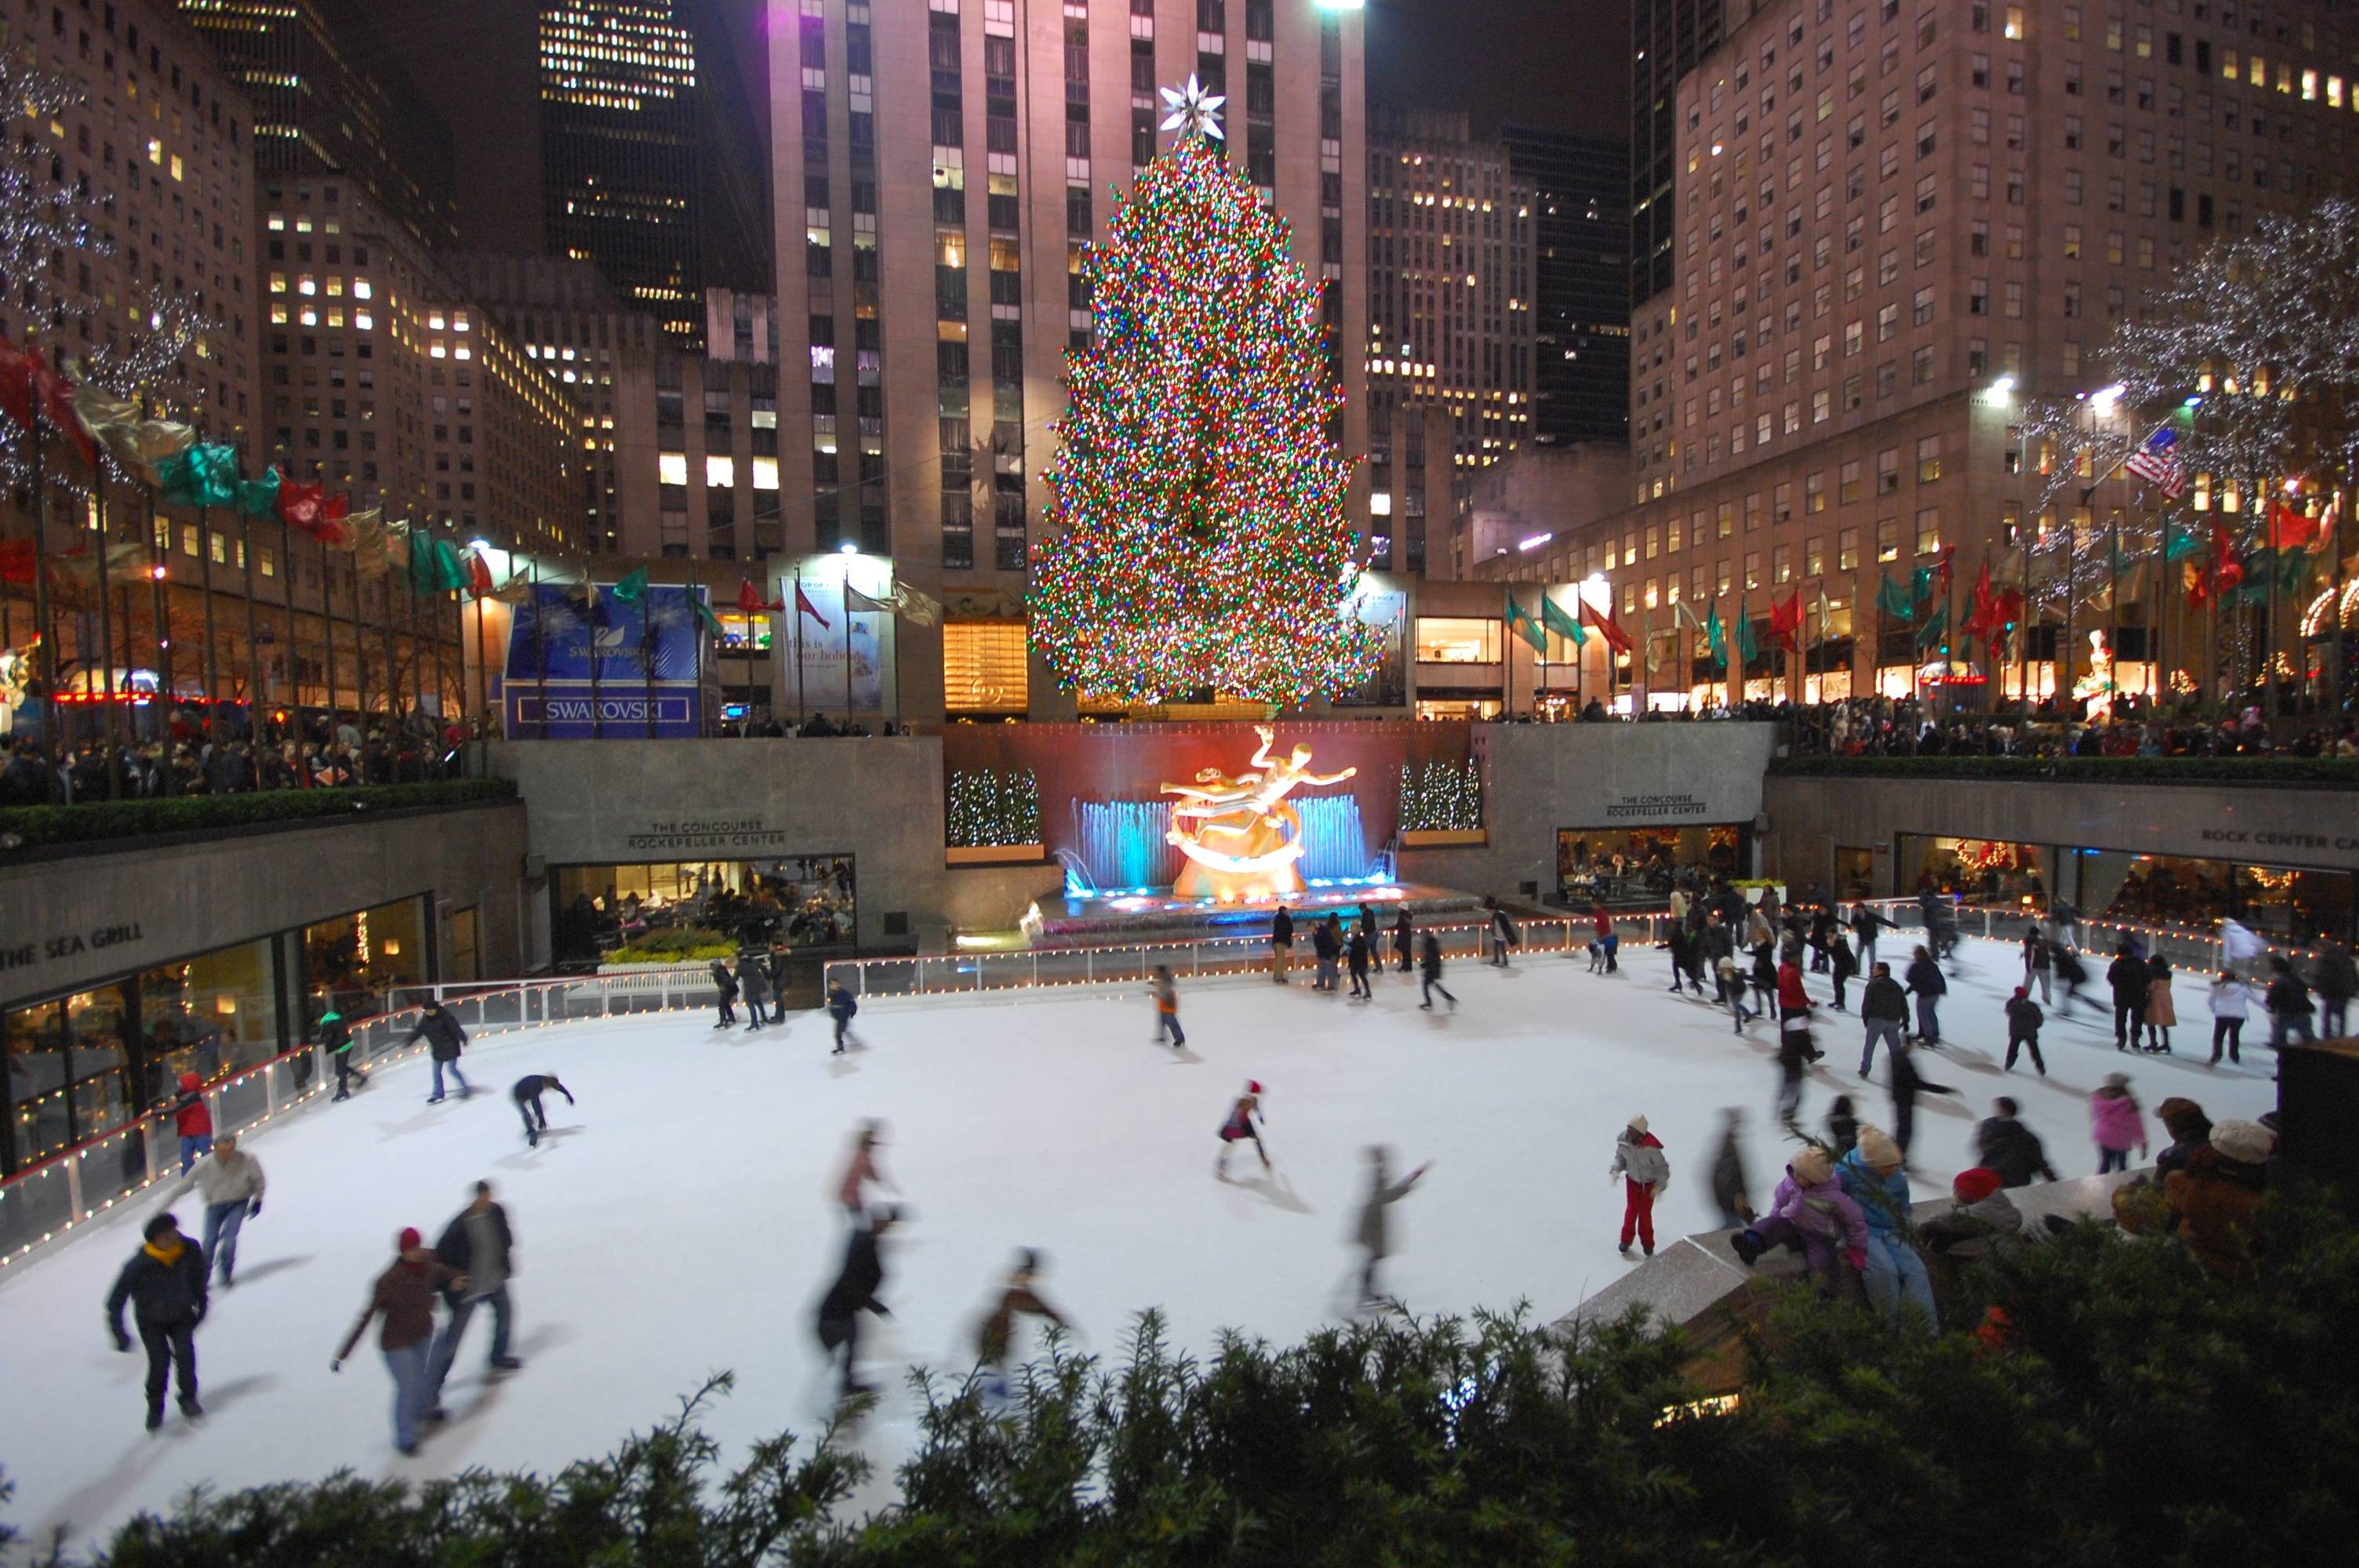 3008x2000 new york at christmas snow | HD Wallpaper and Download Free Wallpaper